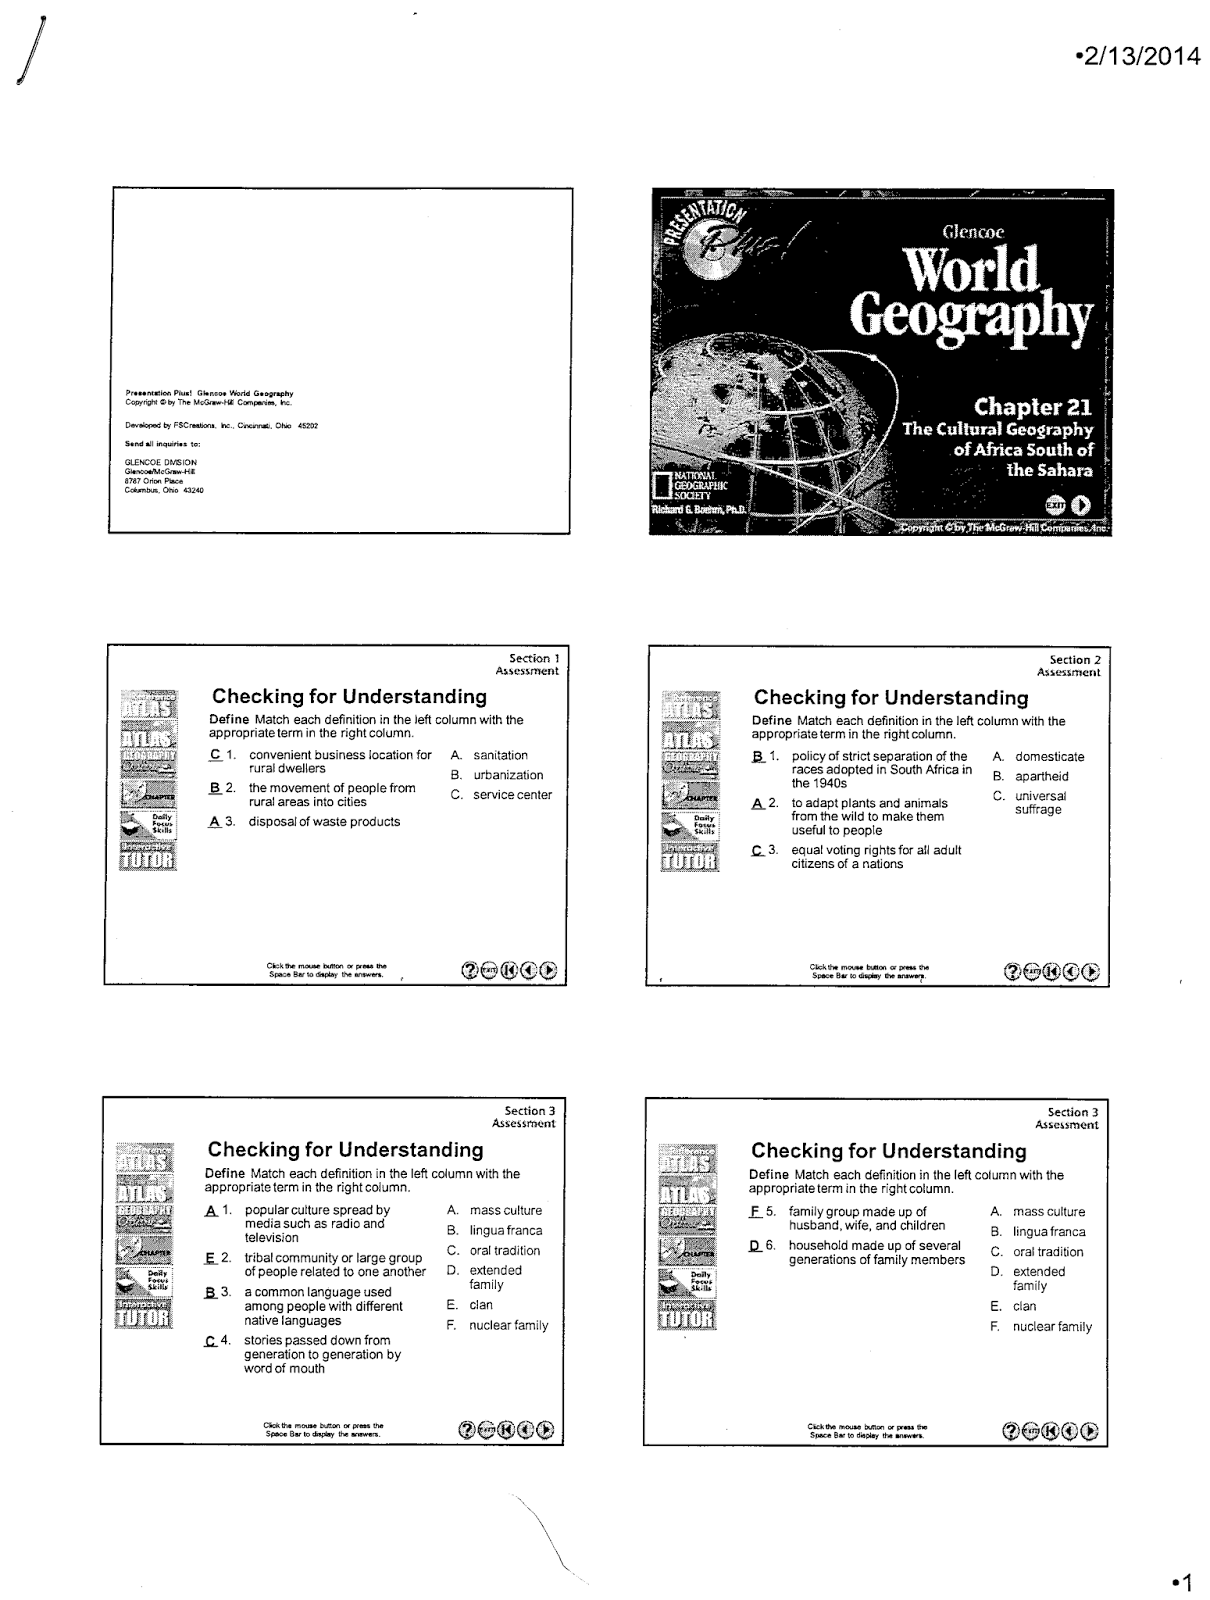 Mr es world geography page world geography chapter 21 the chapter 21 classwork sciox Gallery